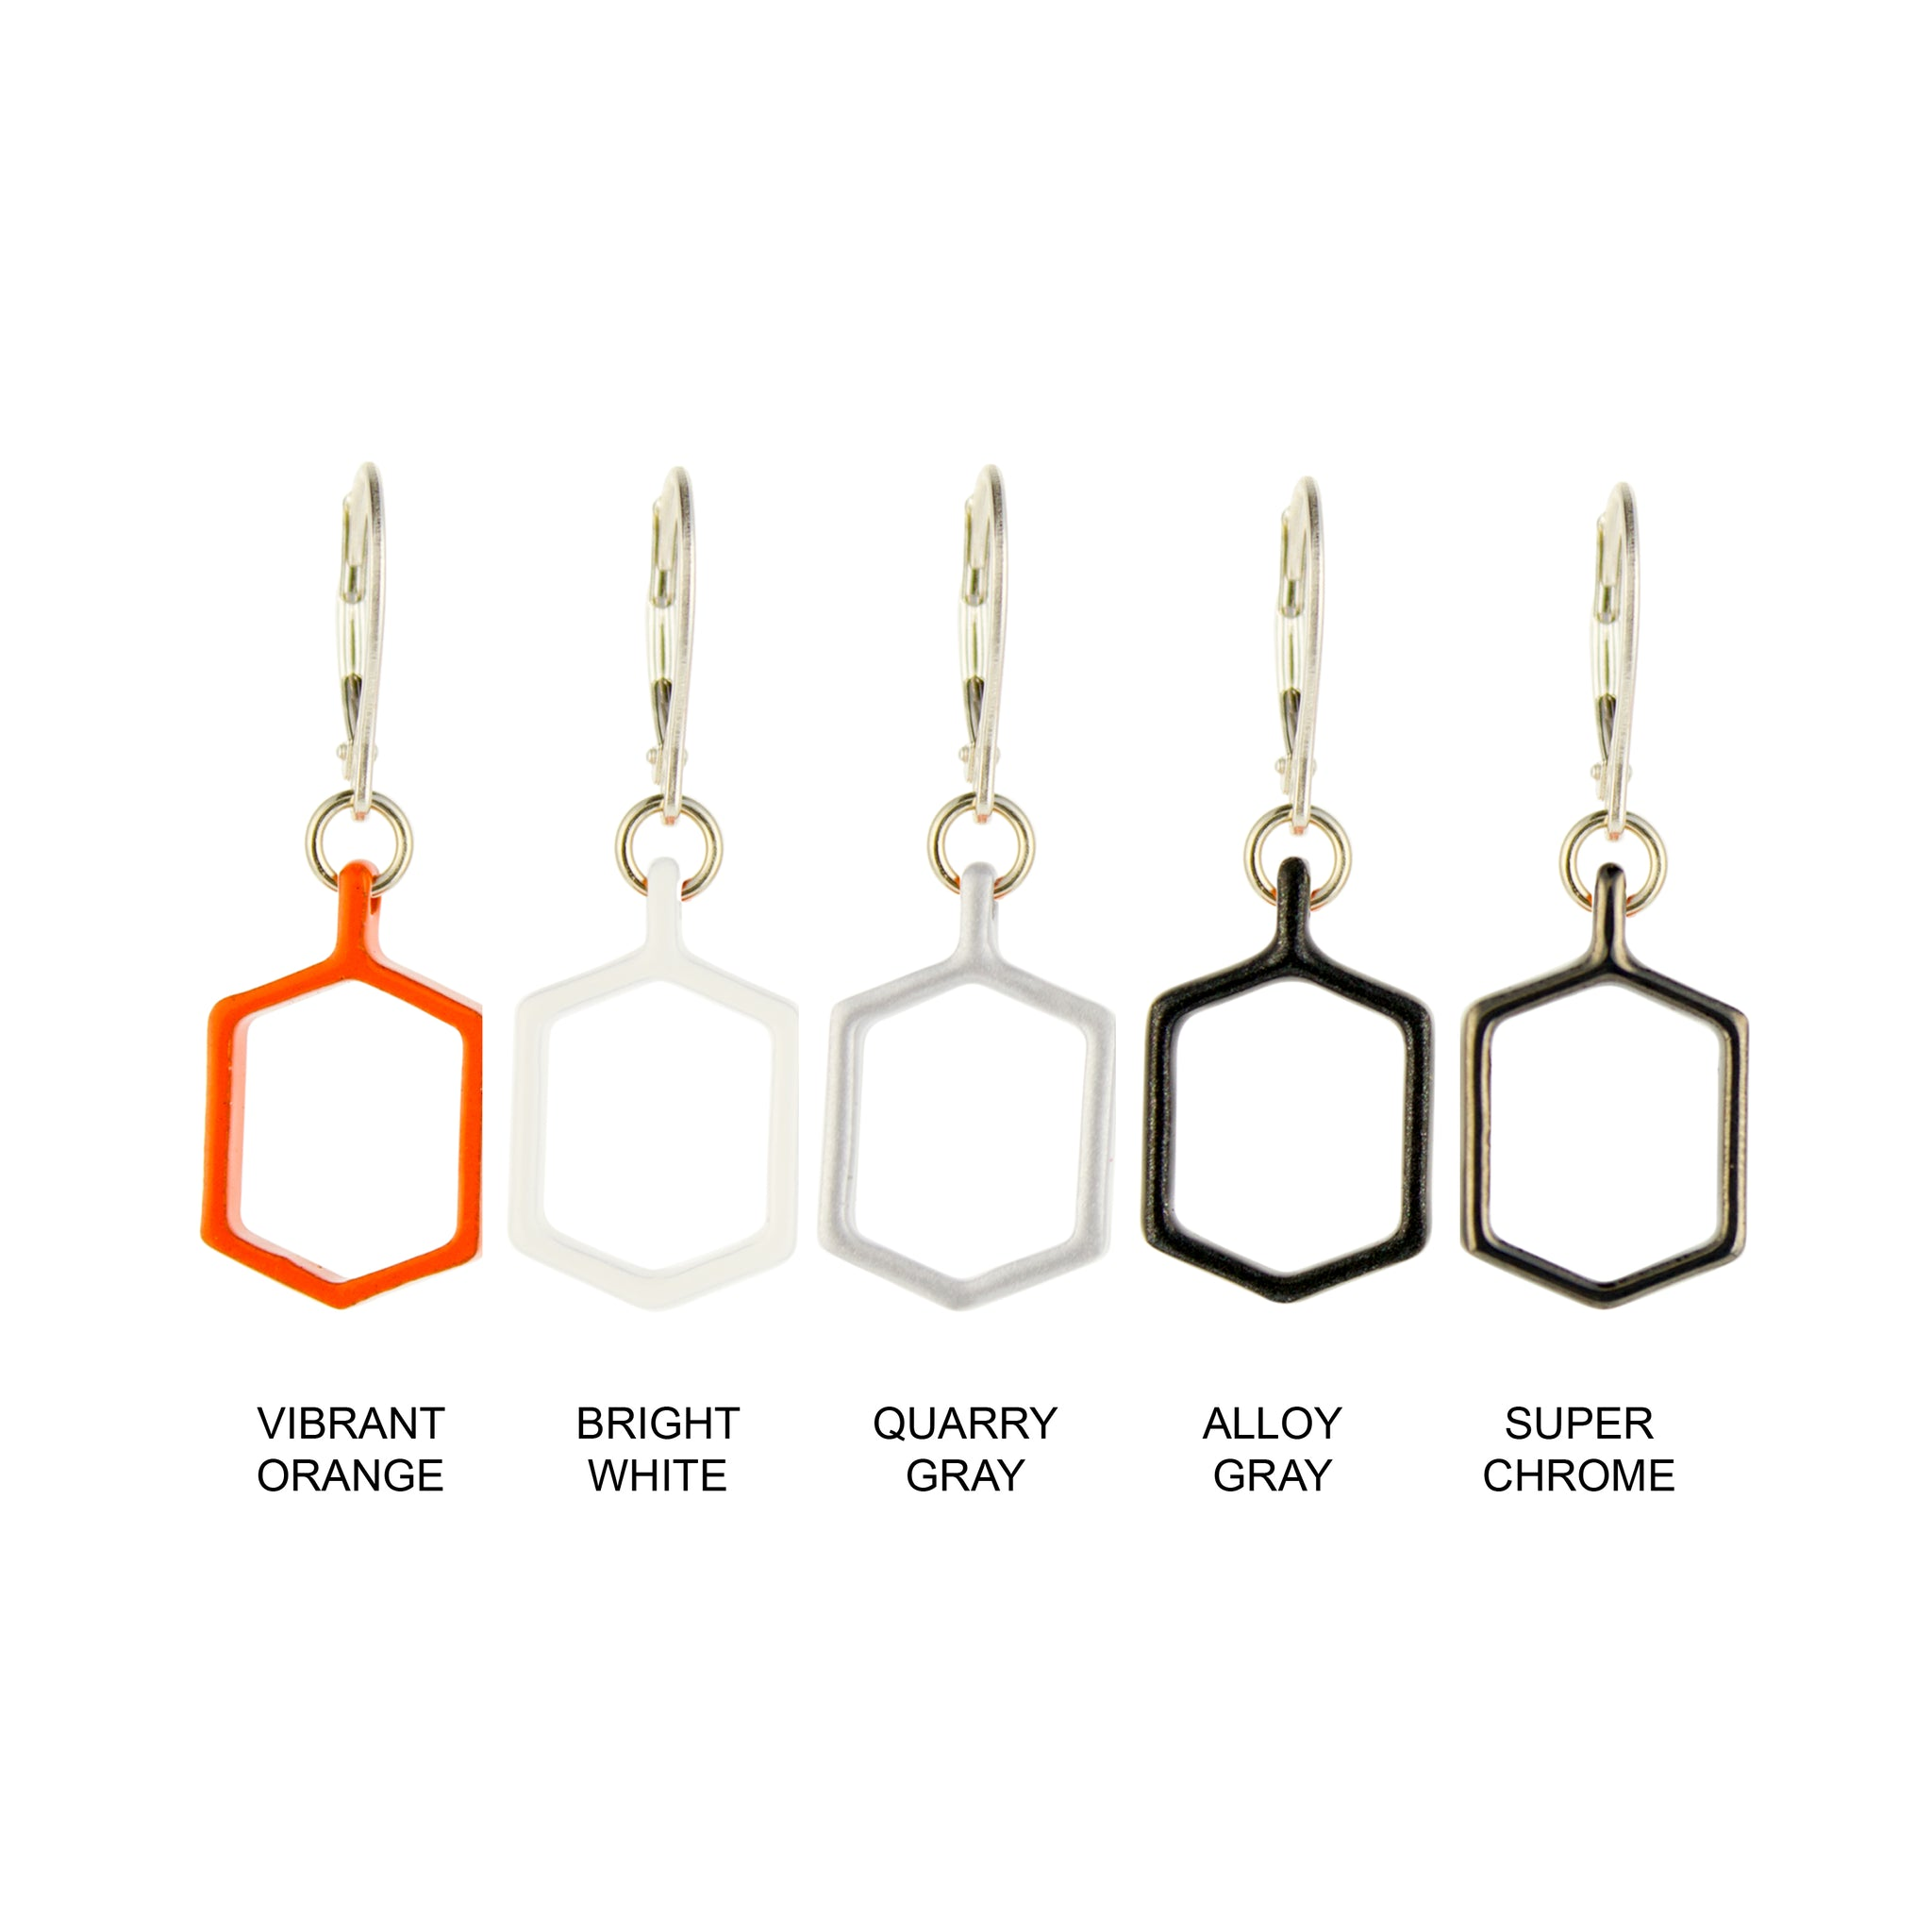 Alloy_Gray - WITHIN x COMMON GROUND Earring Flat View Colorways